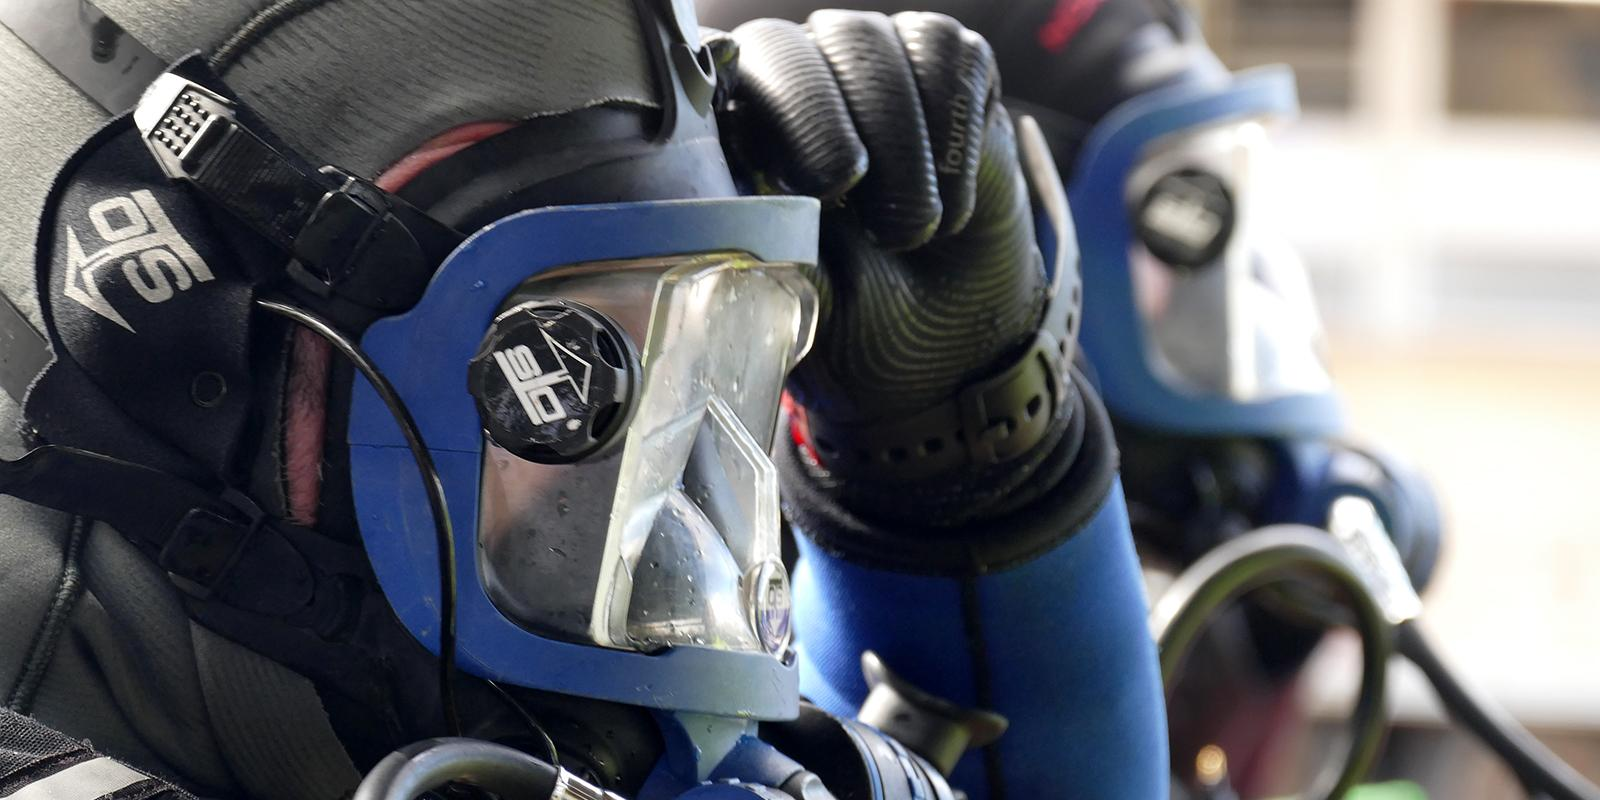 Side profile of a diver's head wearing a face mask, before diving.